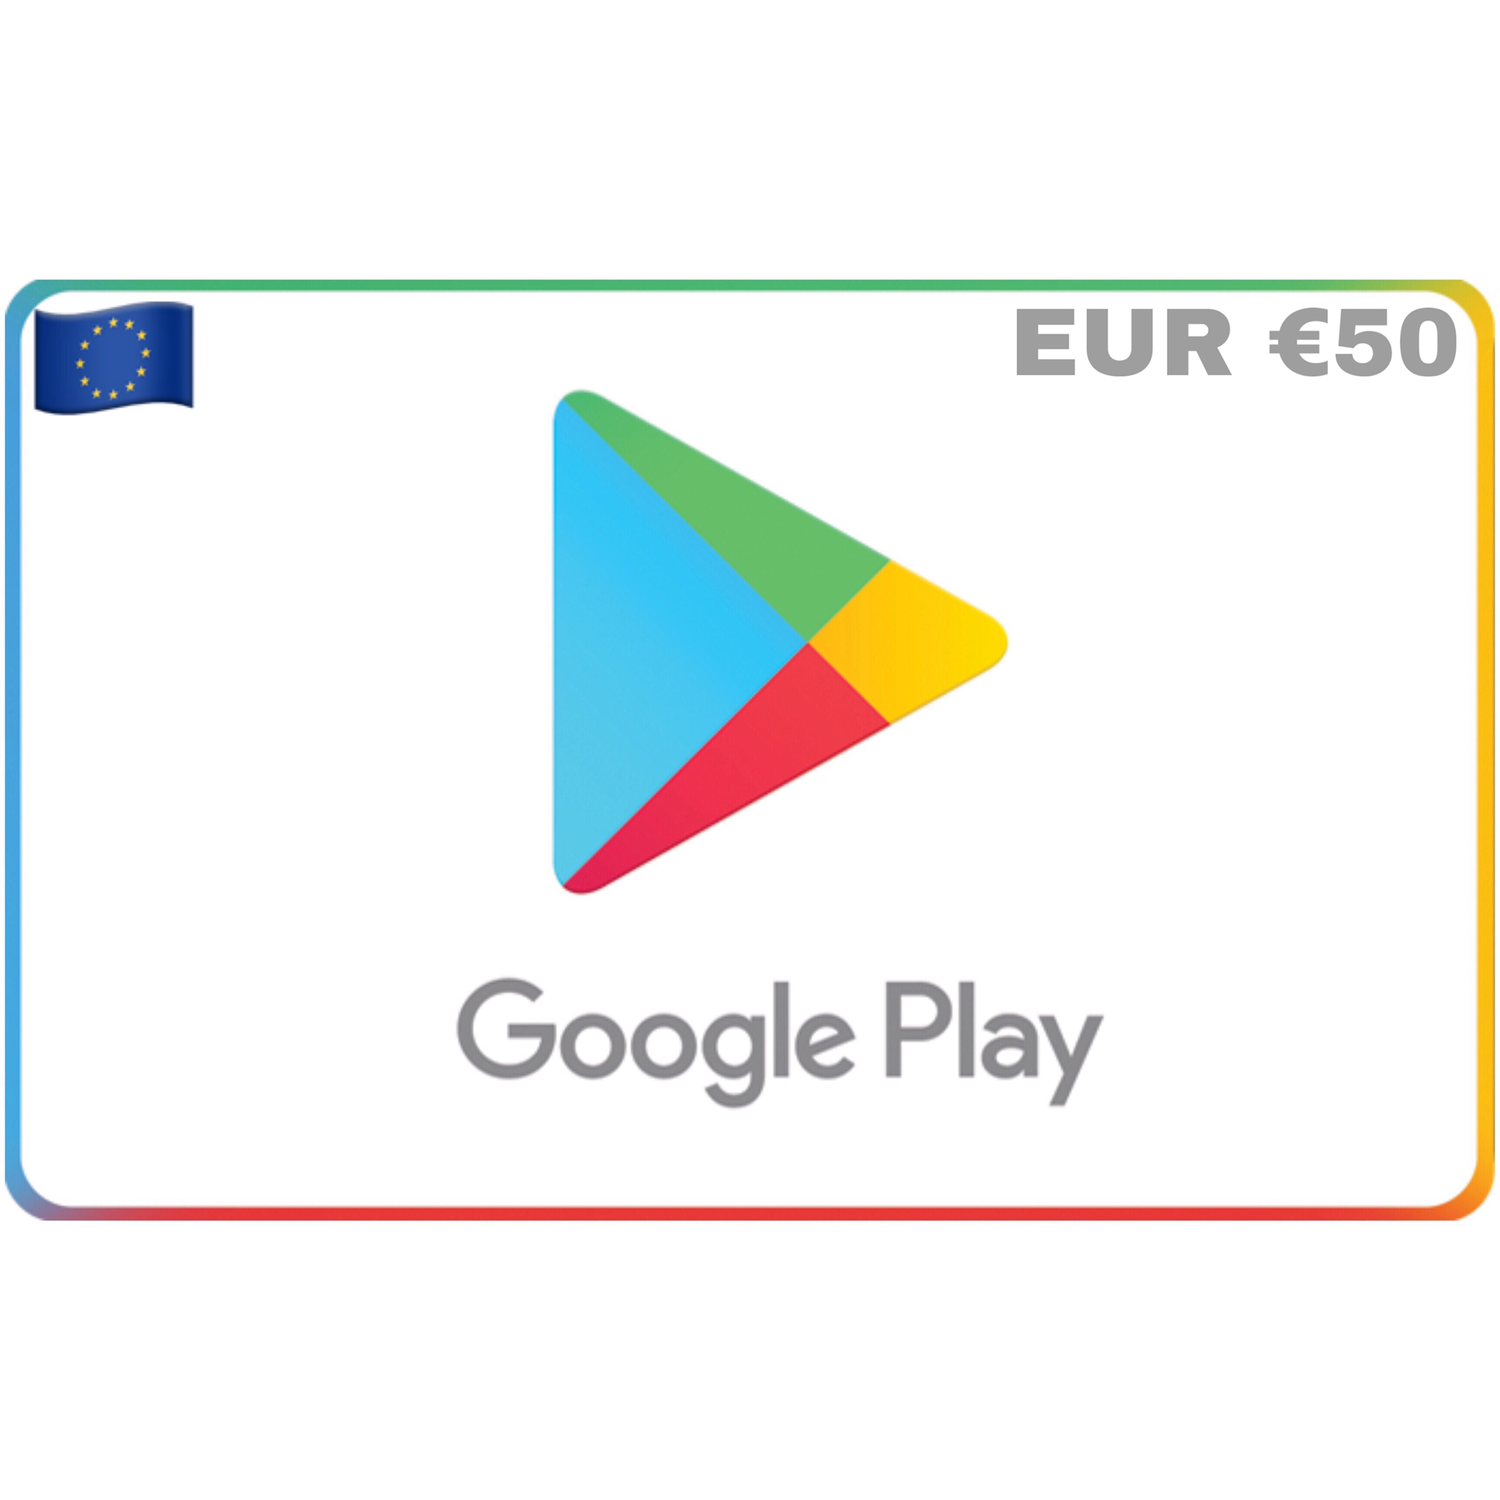 Google Play Gift Card Europe €50